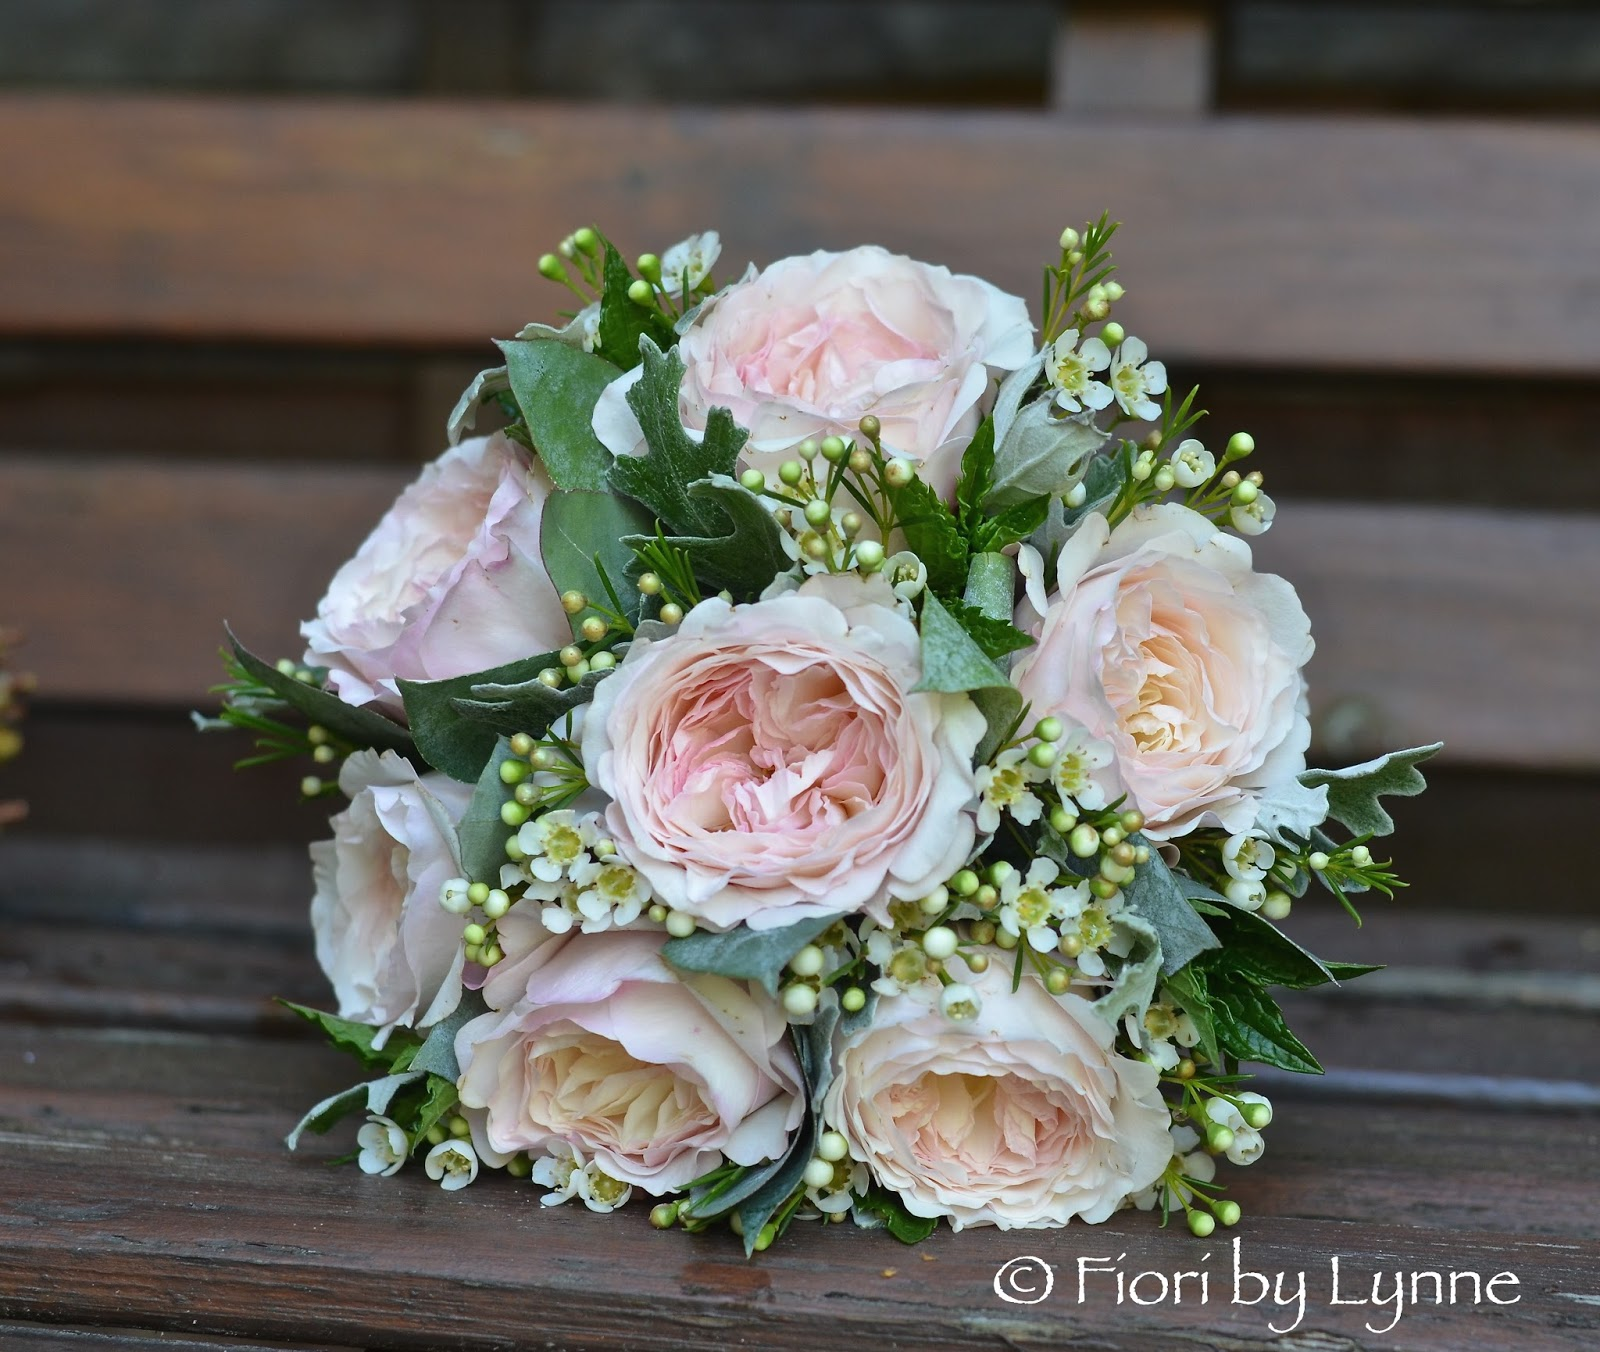 Wedding Flowers Blog: Laura's Coral, Blush and Lavender ...